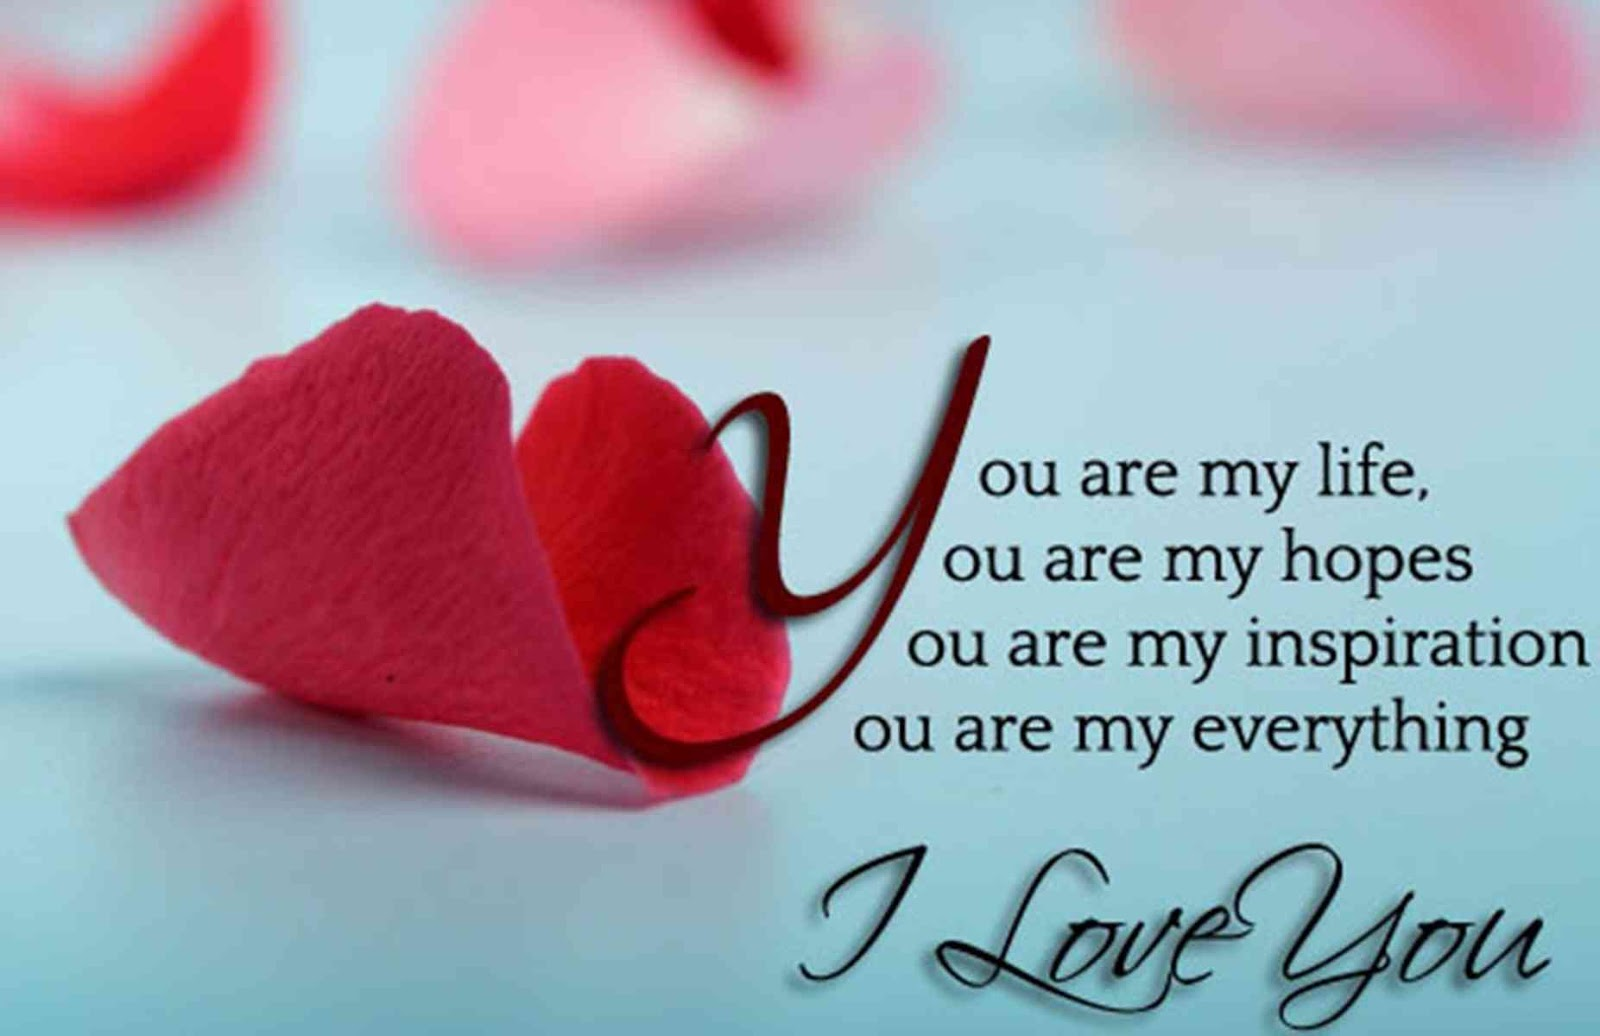 Cute Love Quotes Pictures And Wallpapers For Mobile: صور عن الحب والغرام صور حب رومانسية جميلة